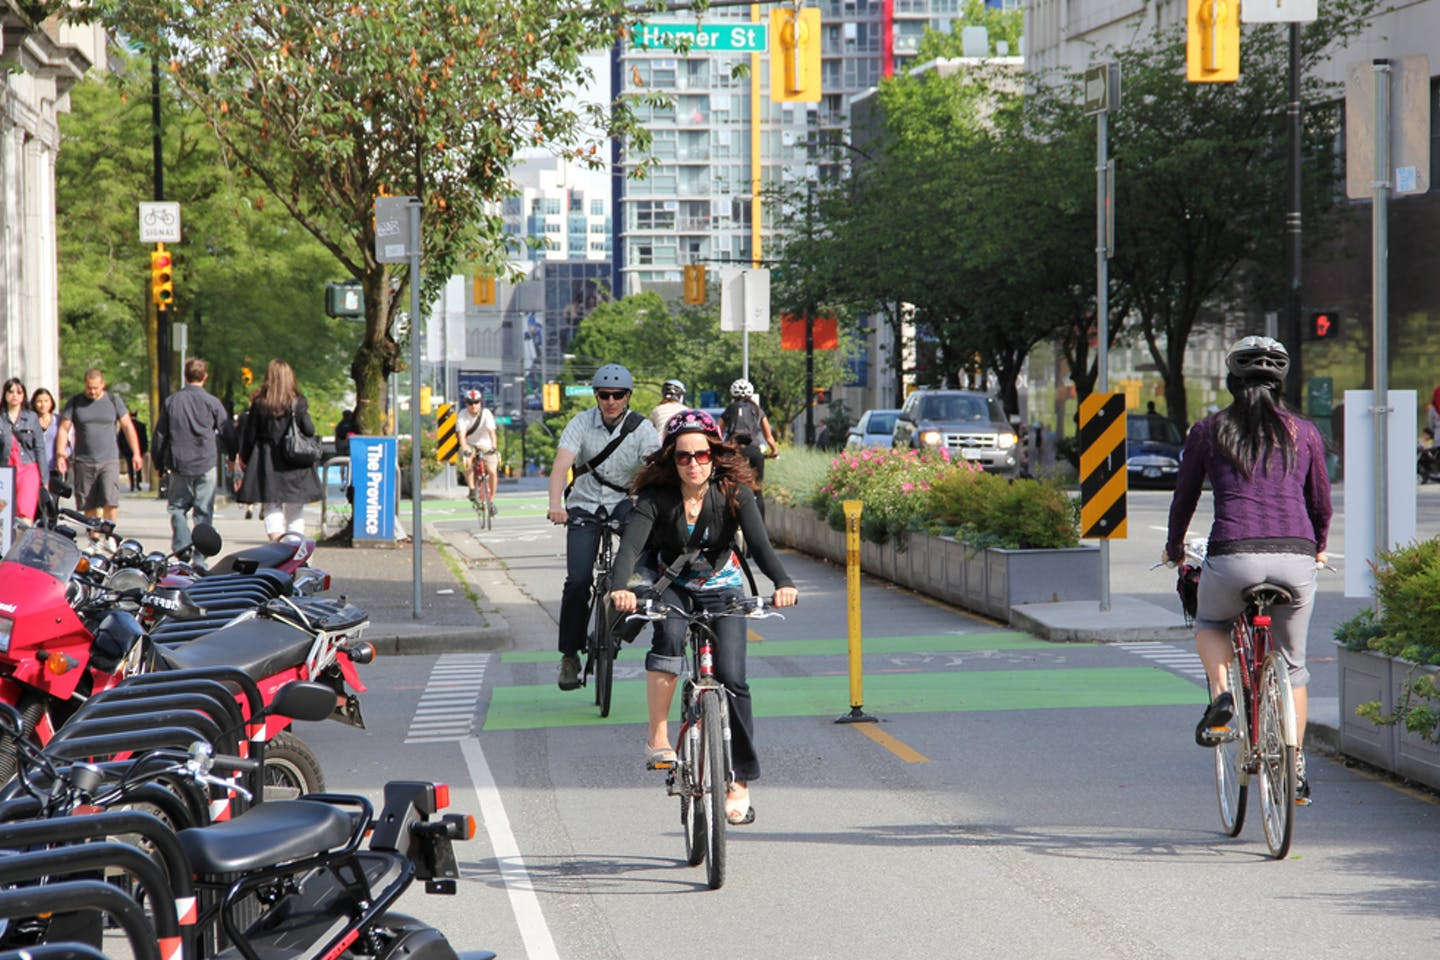 Cyclists on a busy bicycle lane in Vancouver, Canada